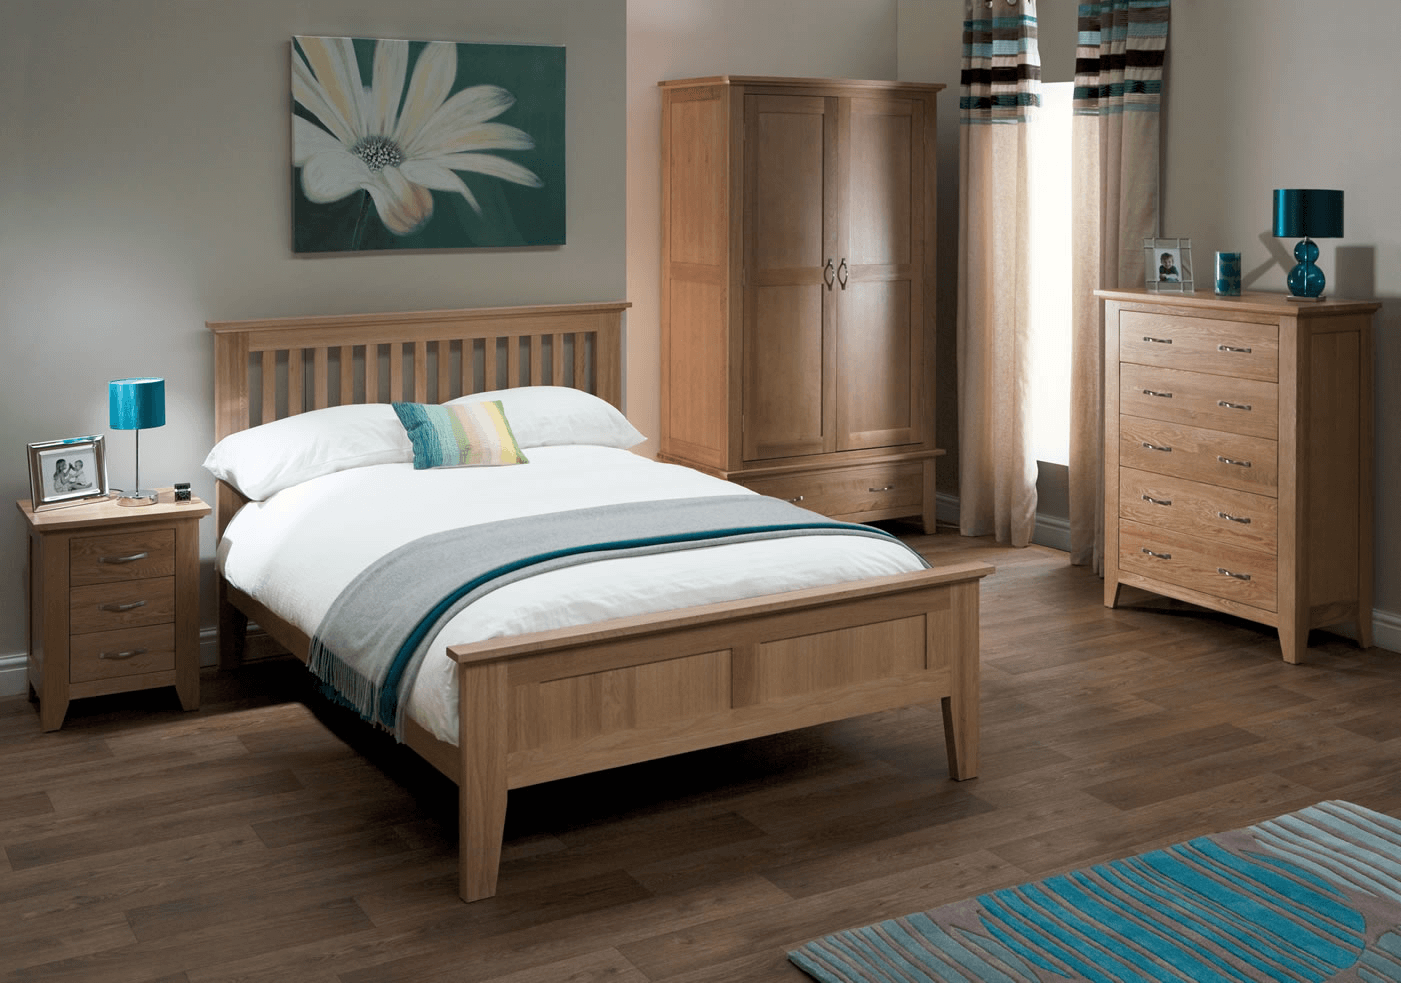 Oak bedroom furniture decorating ideas bedroom pinterest oak